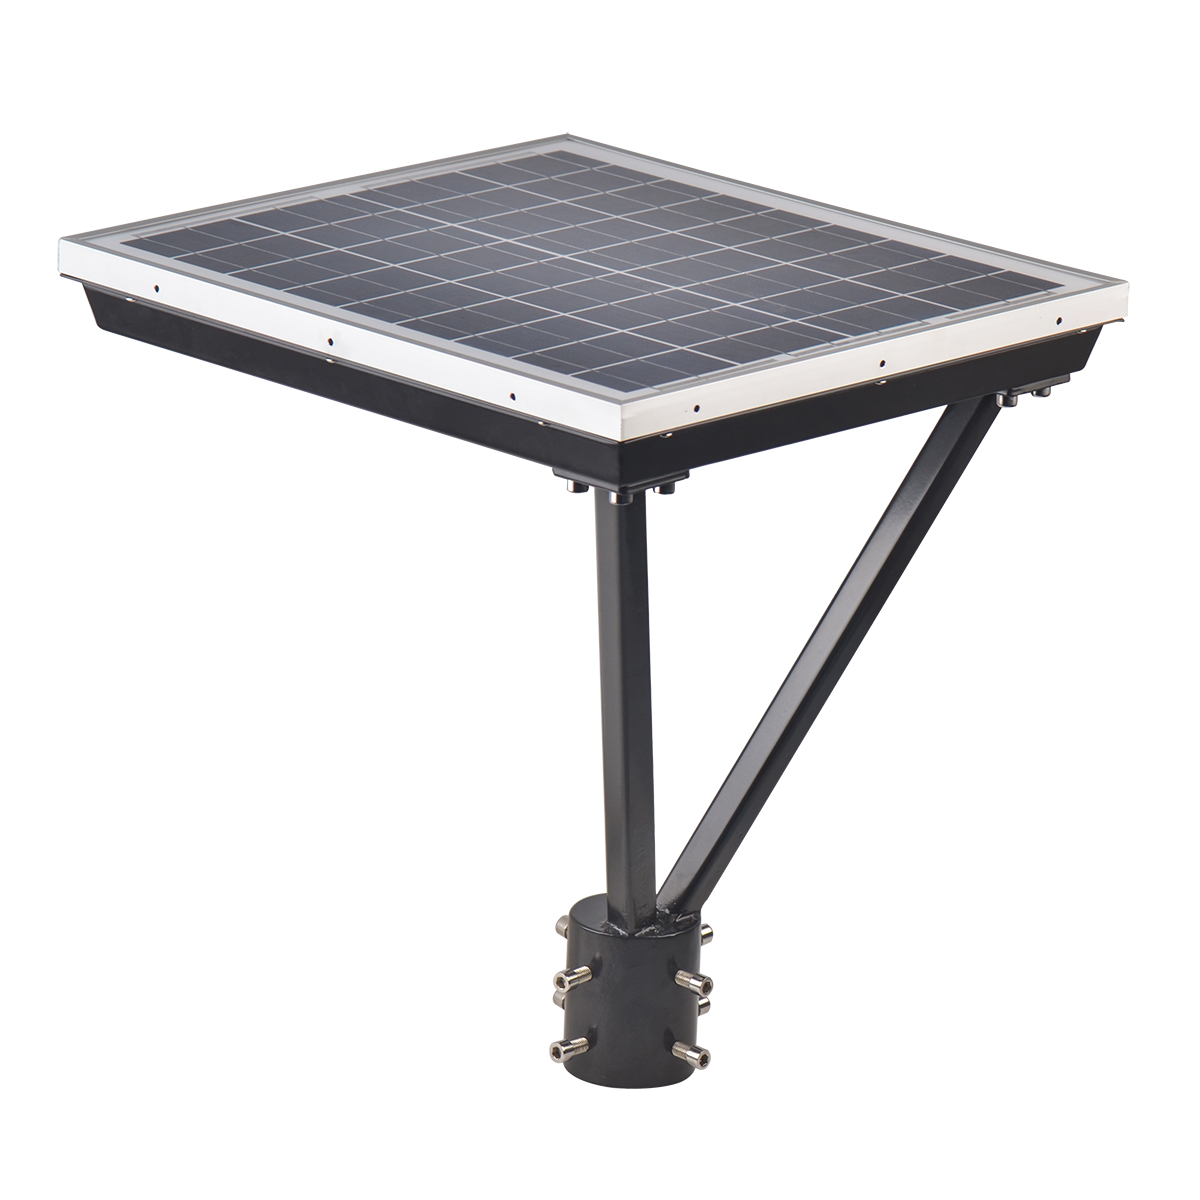 25W Square Solar led top light for gardens